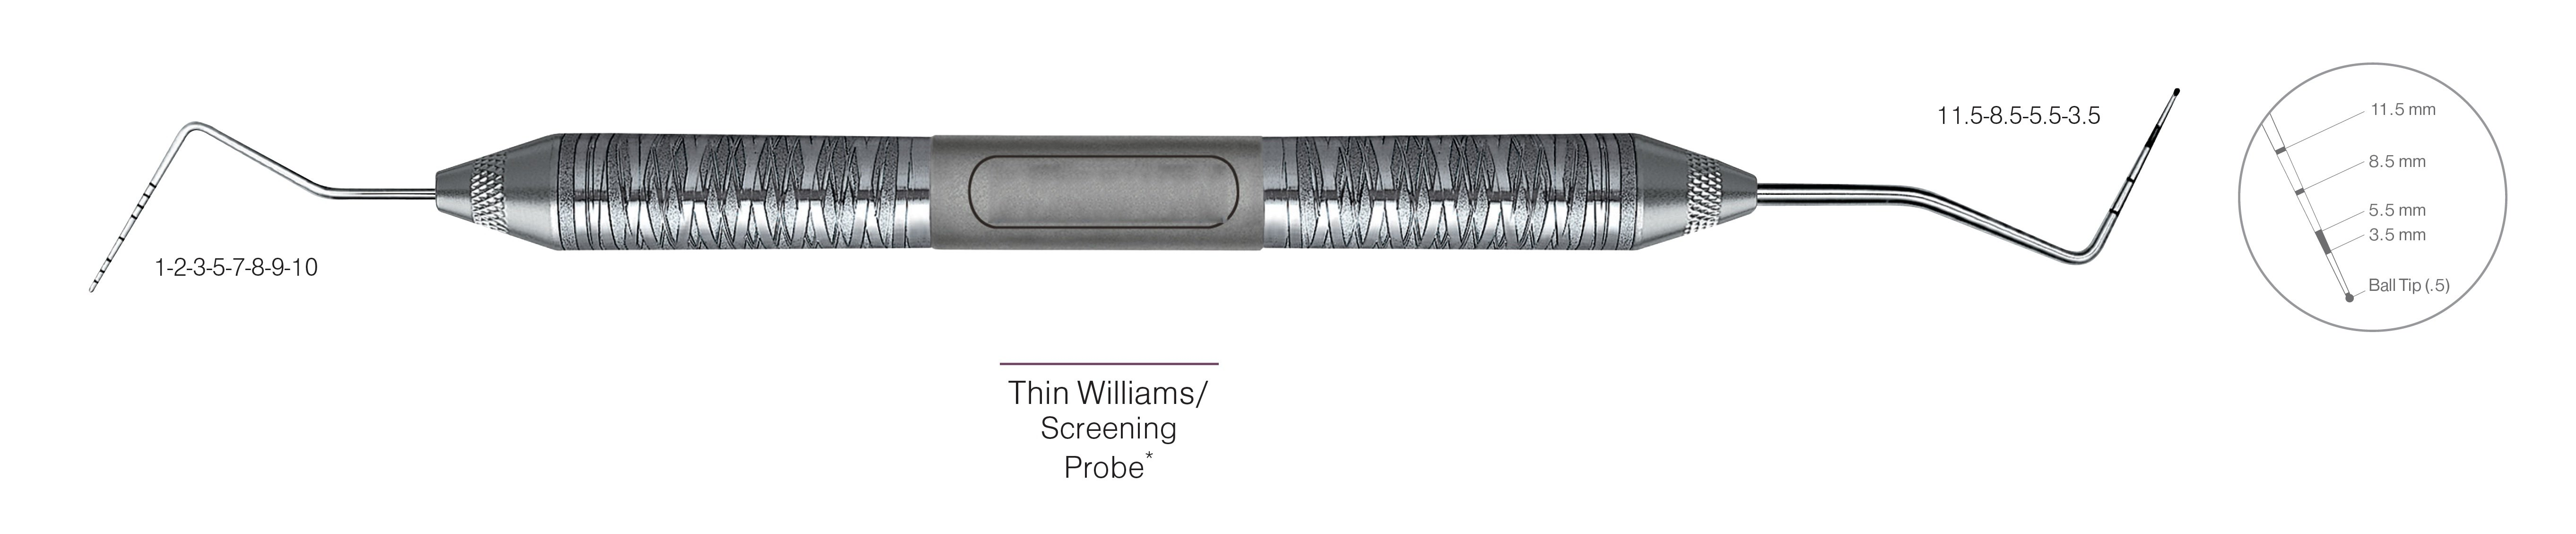 HF-PQOW11.5B6-6, DOUBLE-ENDED SCREENING PROBES Thin Williams/Screening Probe*, Black markings, Tip 1-2-3-5-7-8-9-10 mm & 11.5-8.5-5.5-3.5 mm, With Ball tip (0.5), Handle Satin Steel, Aluminum Titanium Nitride (AlTiN) Coating, Double Ended